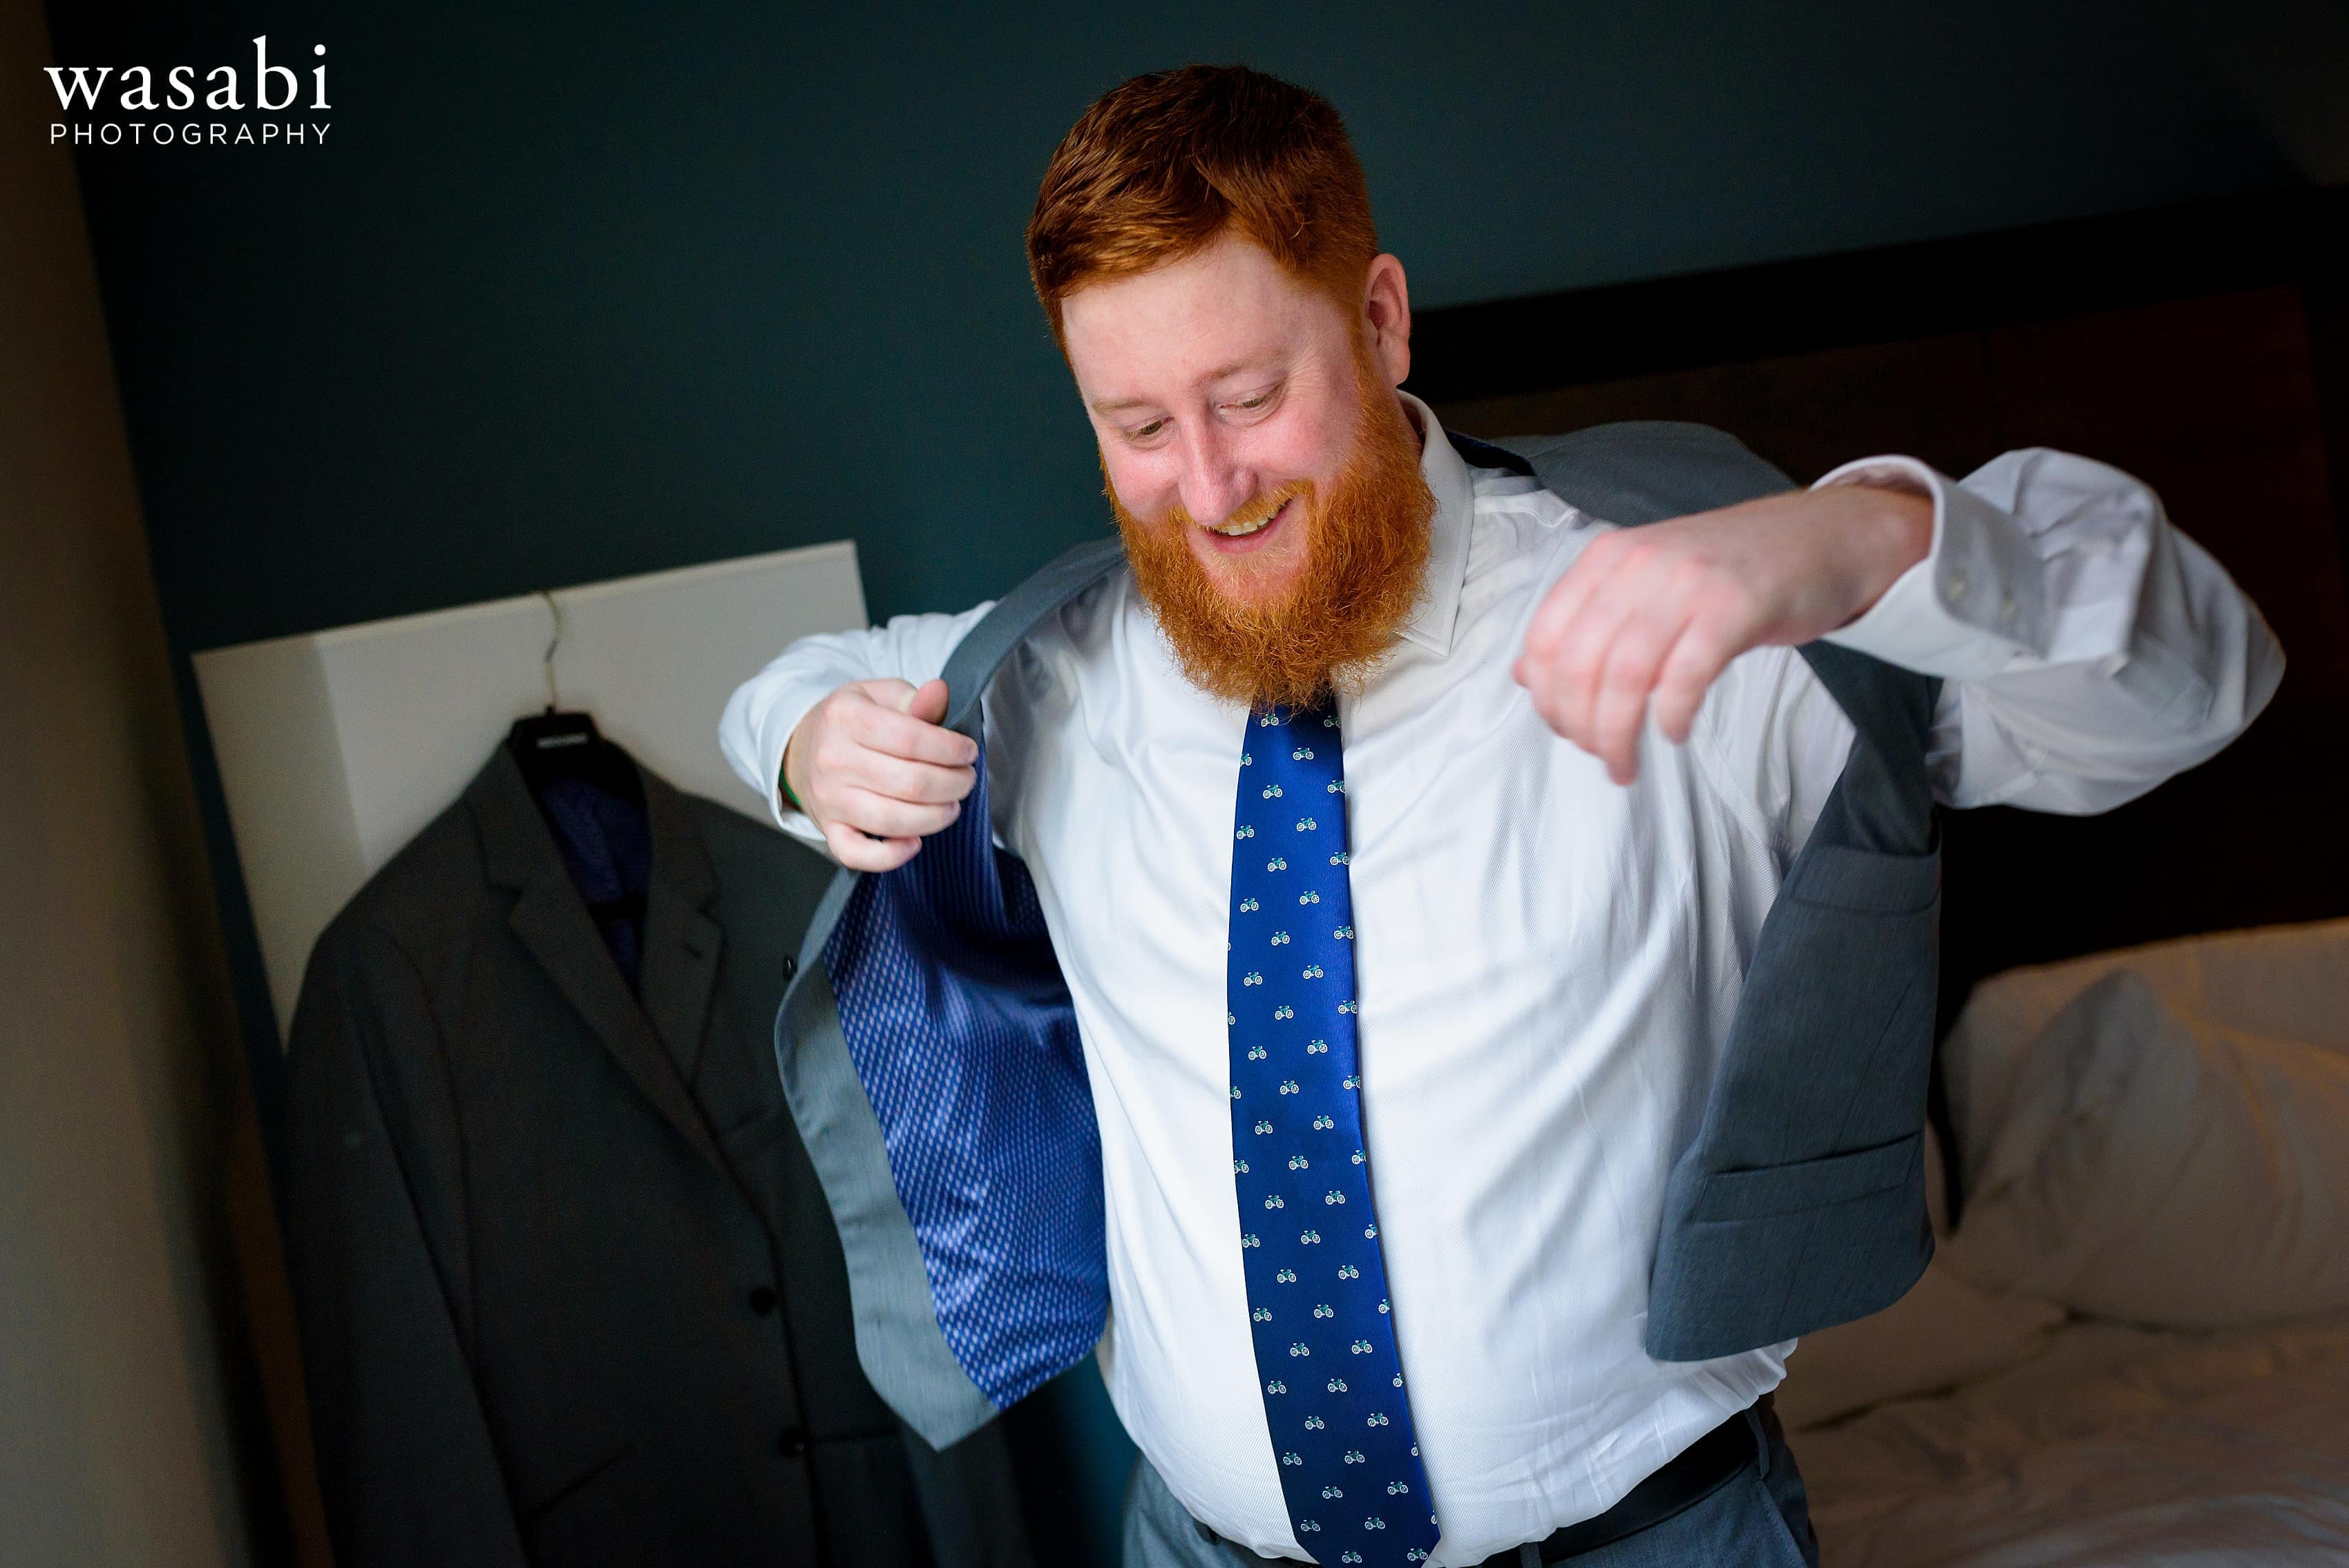 A groom puts on his vest his ties while getting ready for his wedding at La Quinta Inn & Suites in downtown Chicago